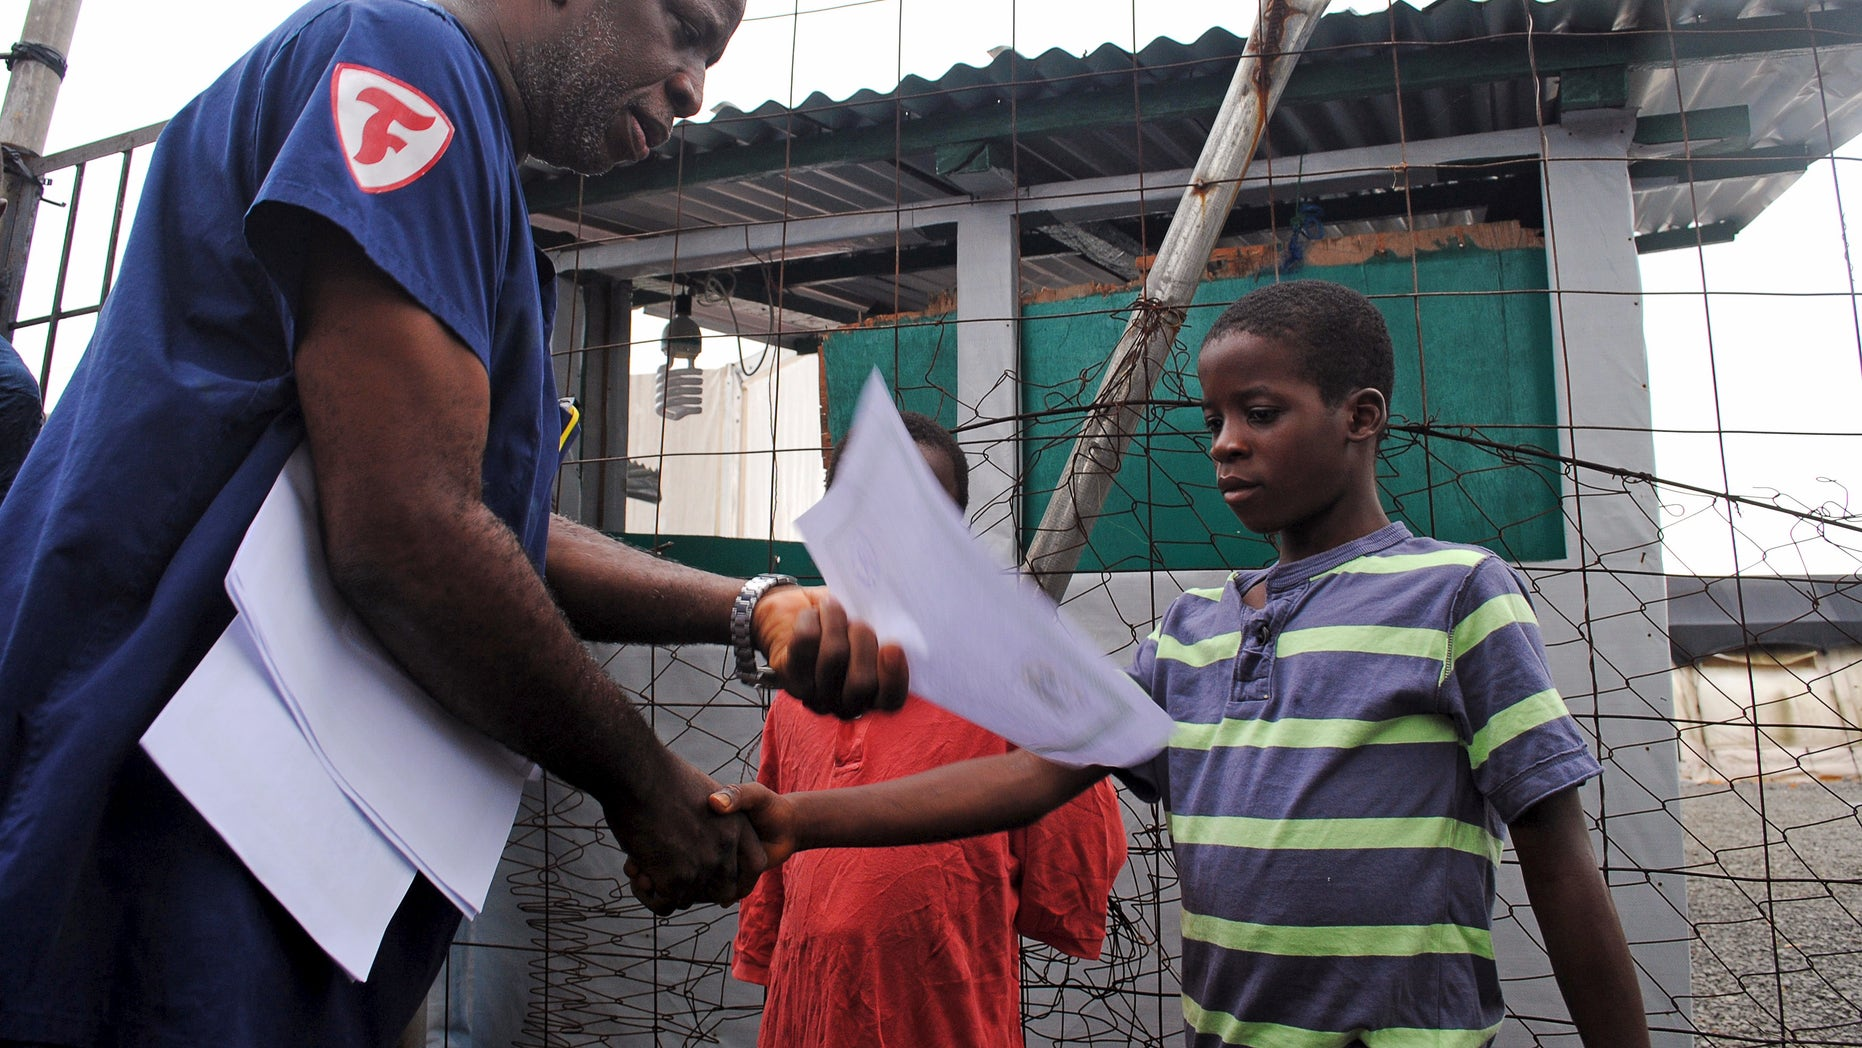 Moses Duo, 9, receives a certificate for being cured of the Ebola virus in Paynesville, Liberia, July 20, 2015. REUTERS/James Giahyue